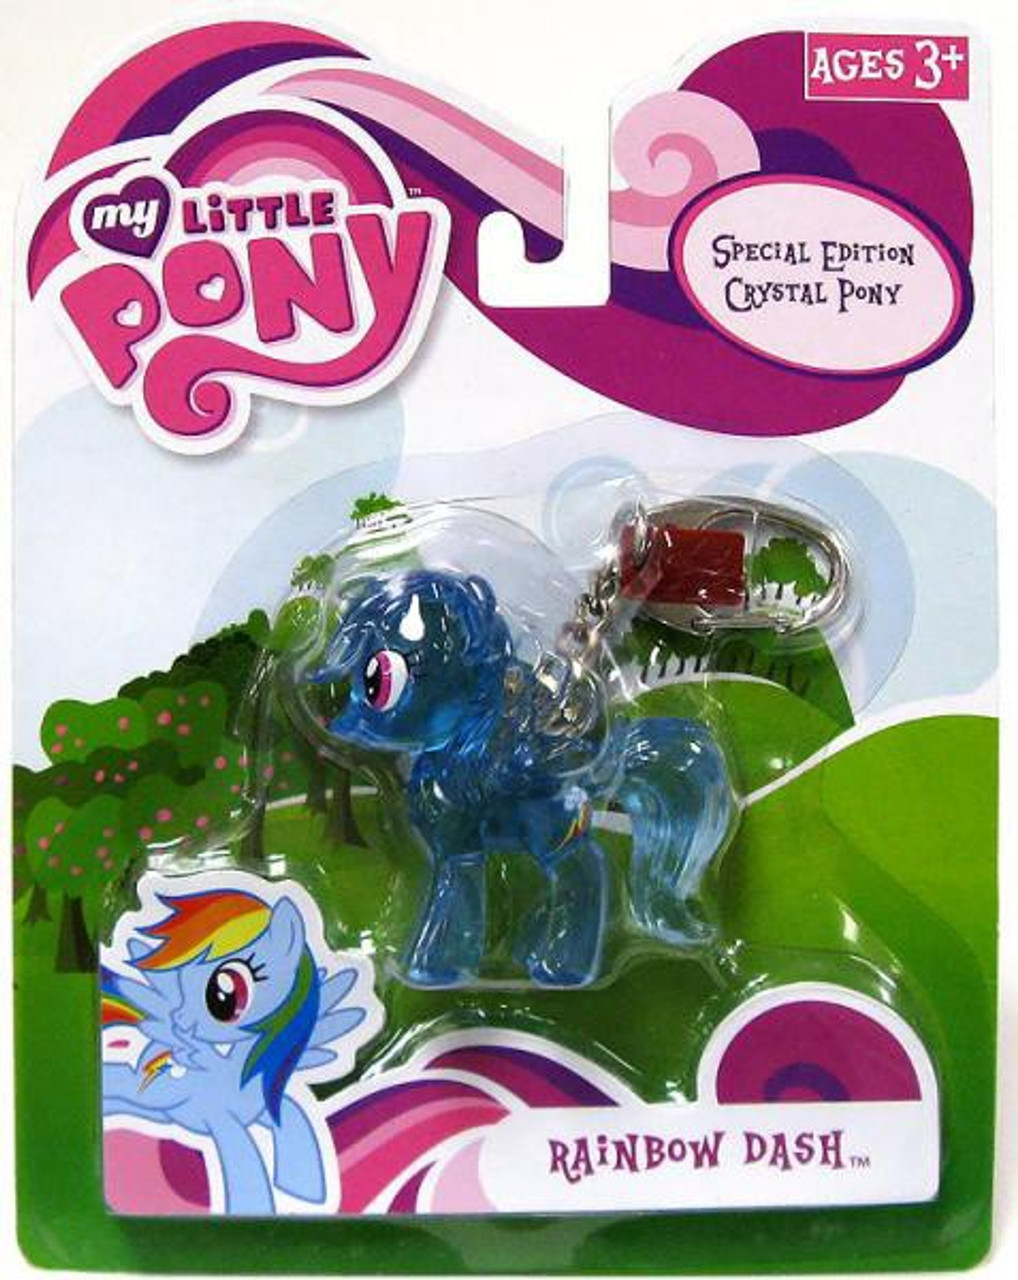 My Little Pony Friendship is Magic Special Edition Crystal Ponies Rainbow Dash Keychain